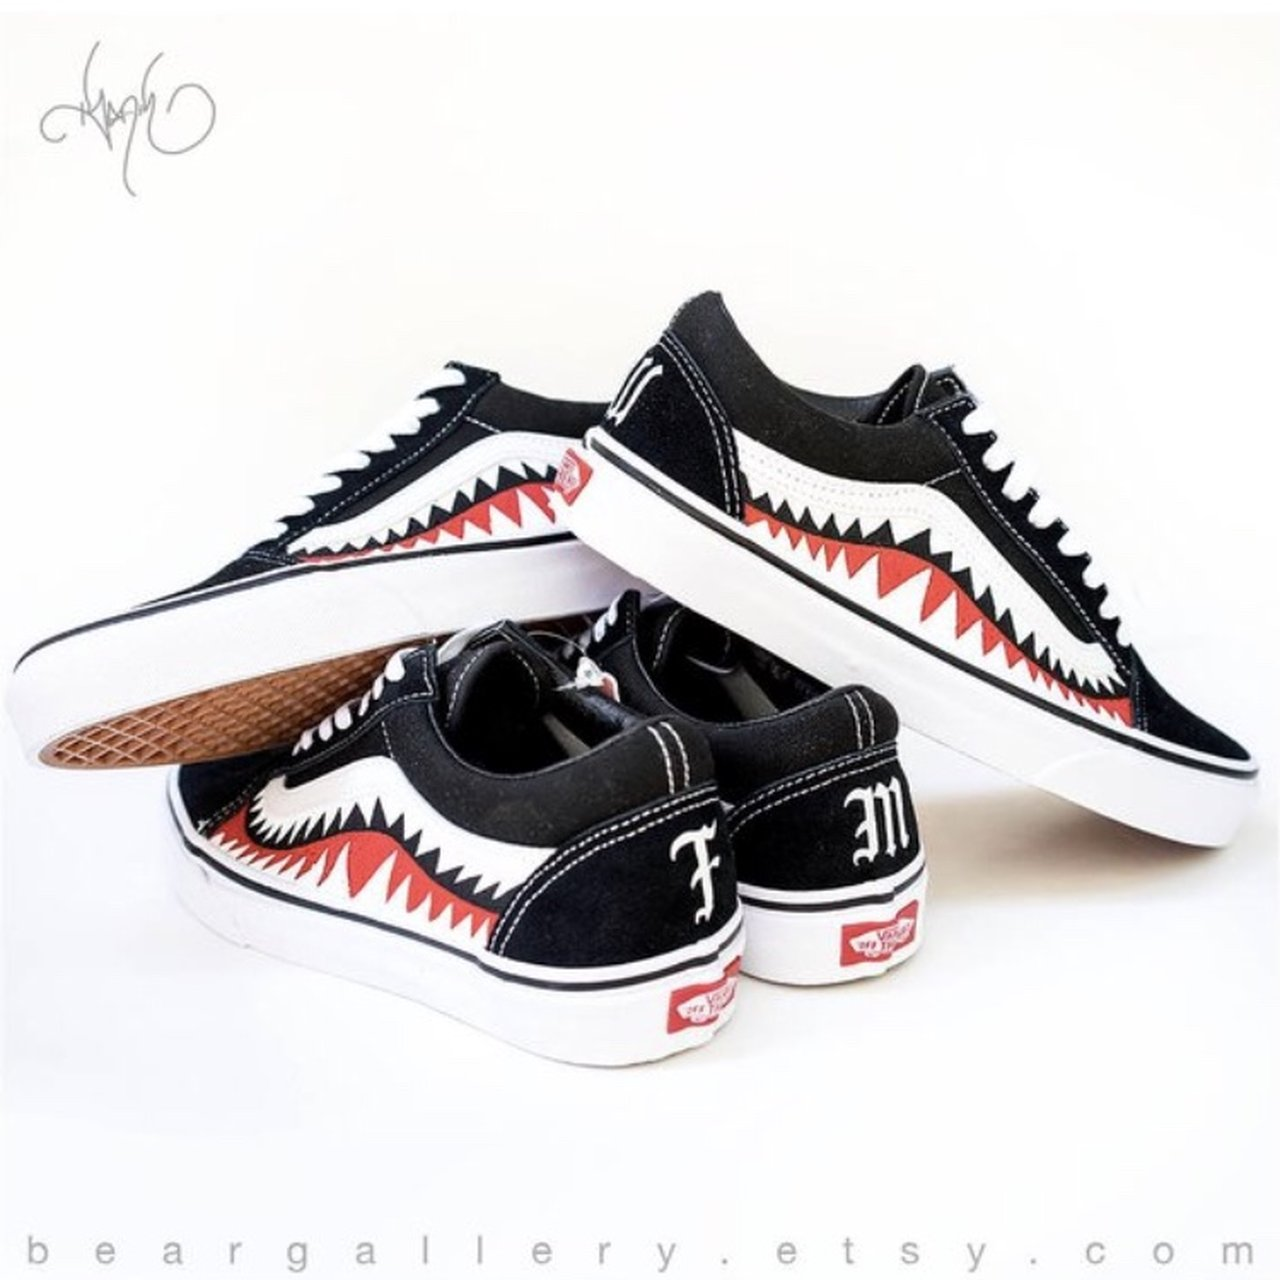 5bfdd394cb Let me paint you something! Here are some custom Vans shoes - Depop